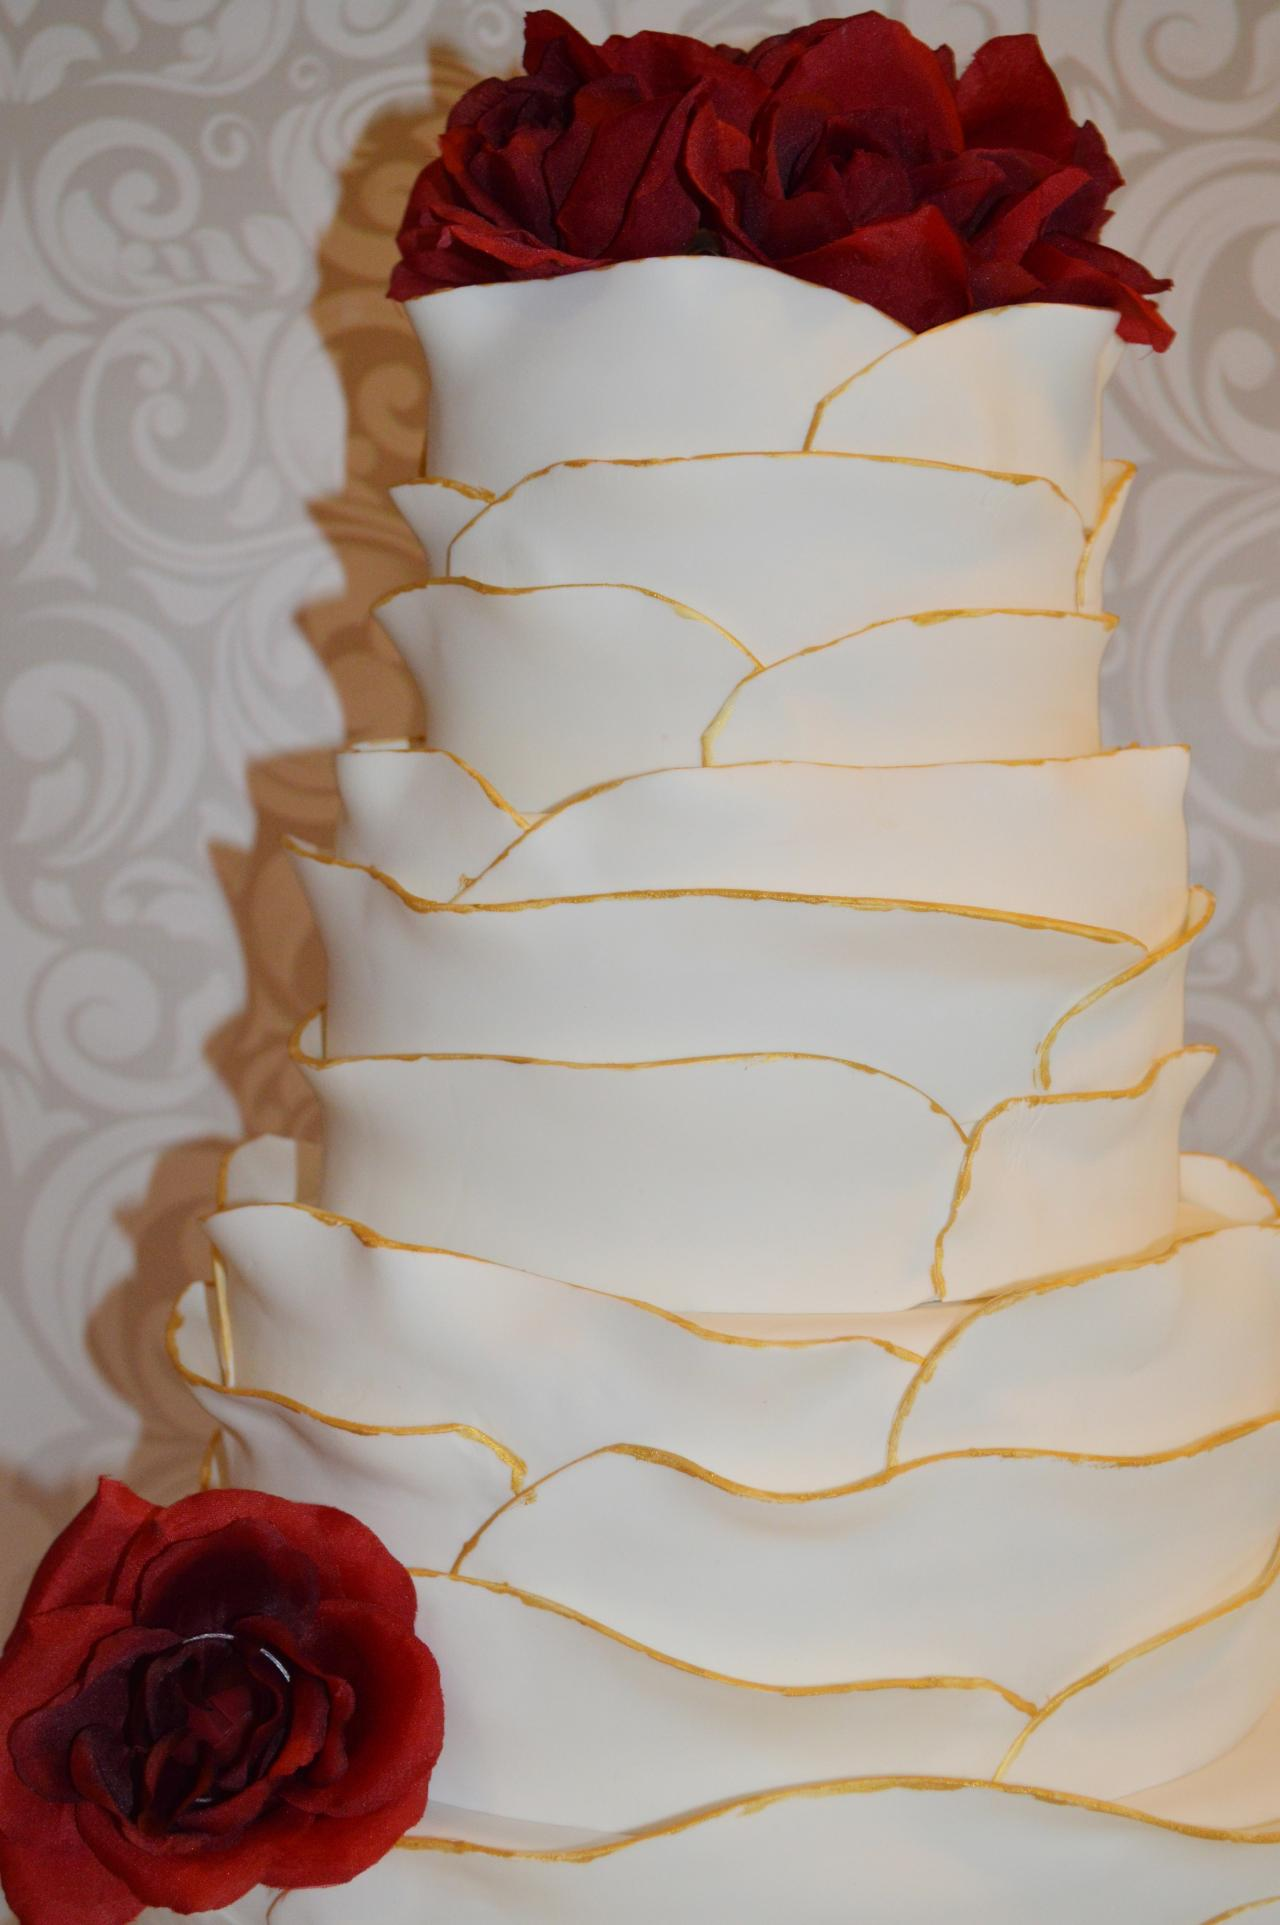 Cakes to Remember - Wedding Cakes